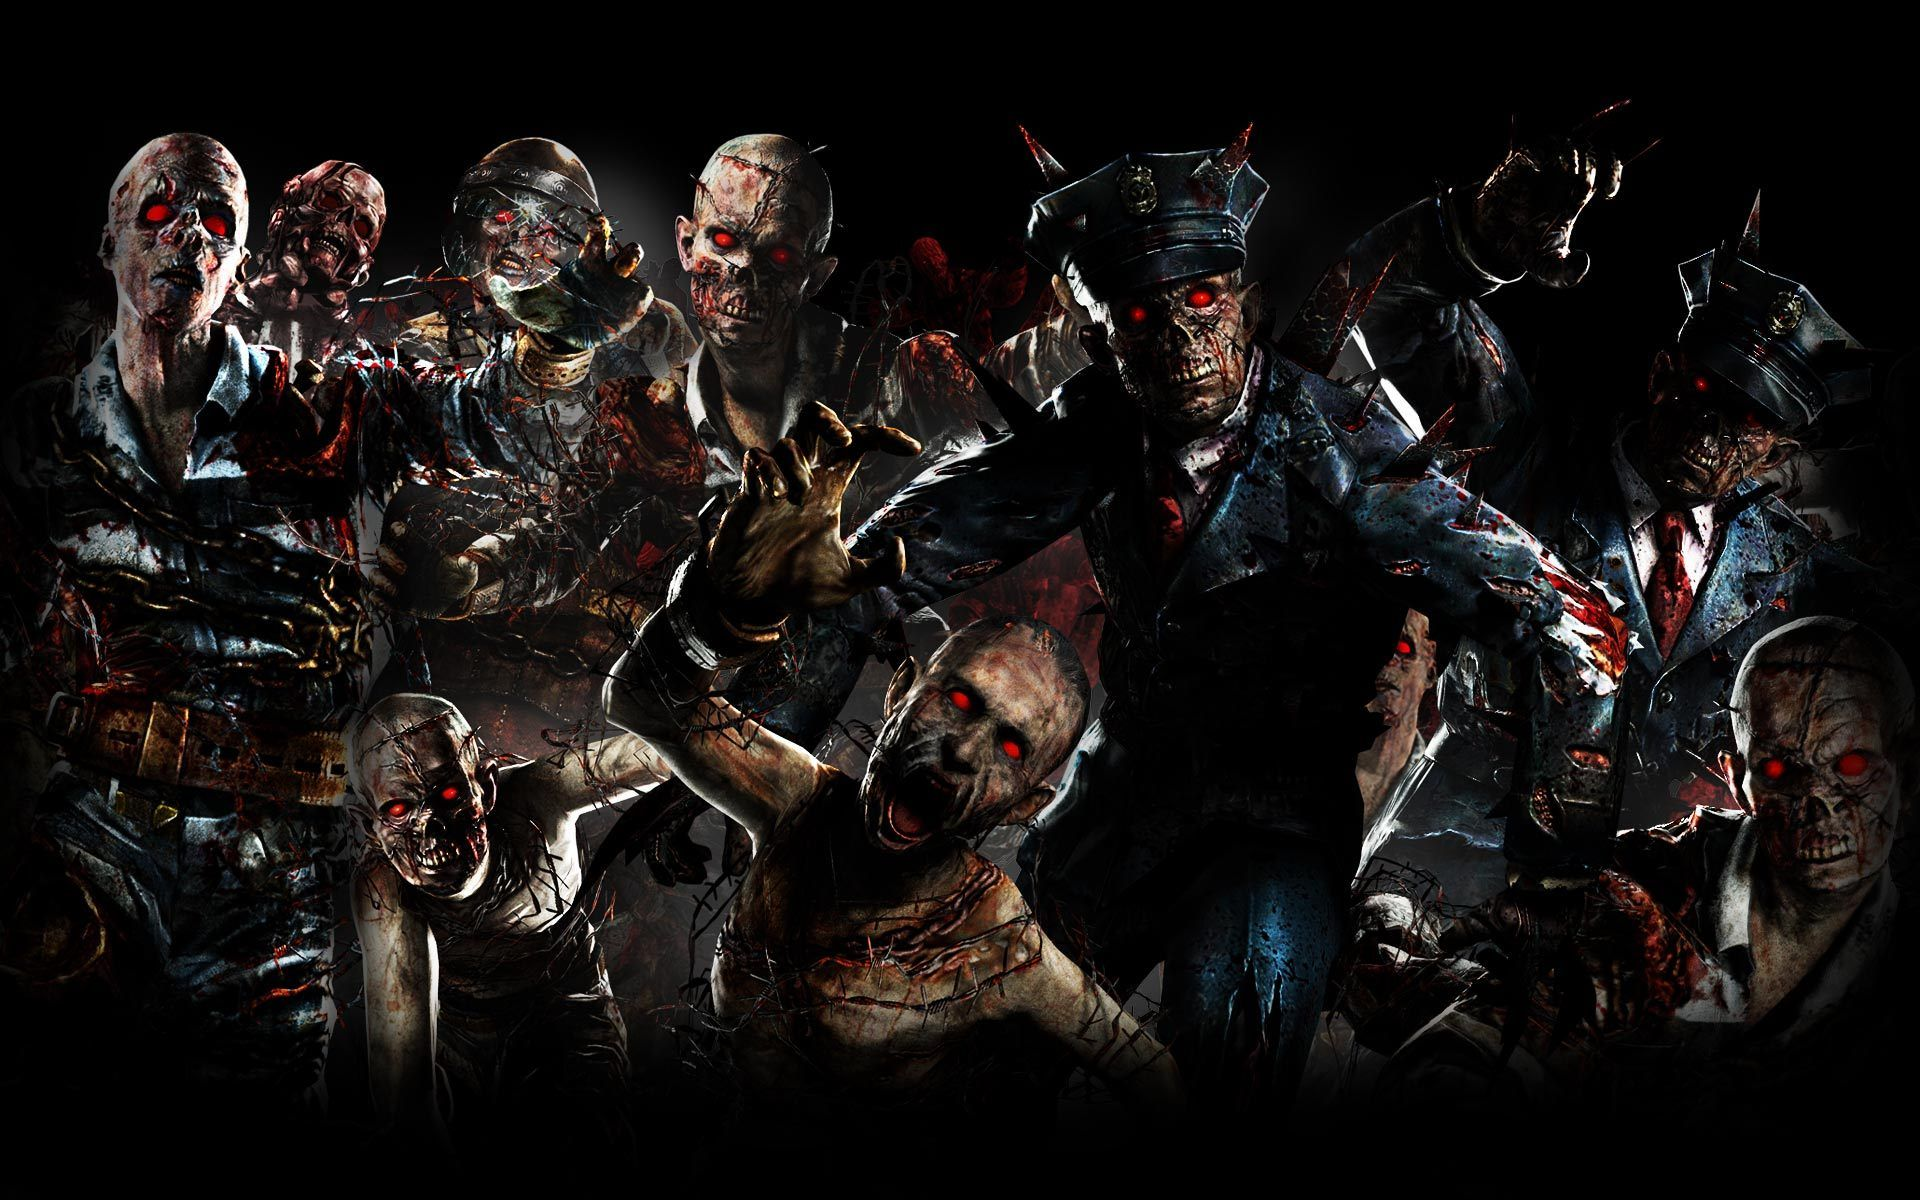 Undefined Call Of Duty 5 Wallpaper 45 Wallpapers Adorable Wallpapers Call Of Duty Black Black Ops Zombies Call Of Duty